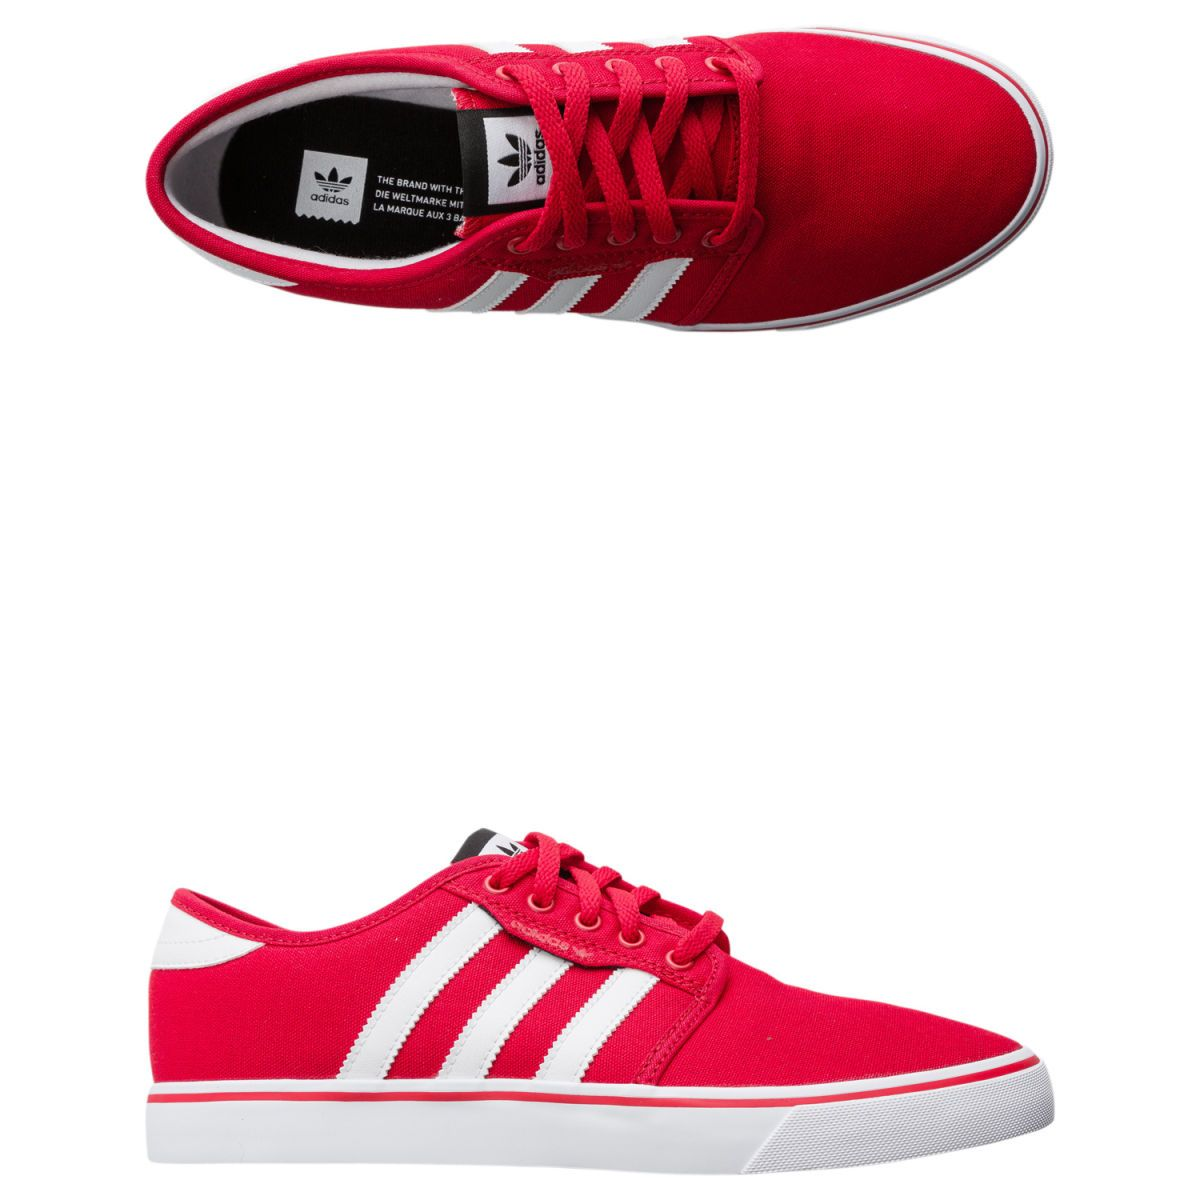 brand new dad59 89273 Adidas Men s Seeley Scarle Ftwwht Cblack Skate Shoe 11 Men US. Adidas  Seeley shoe